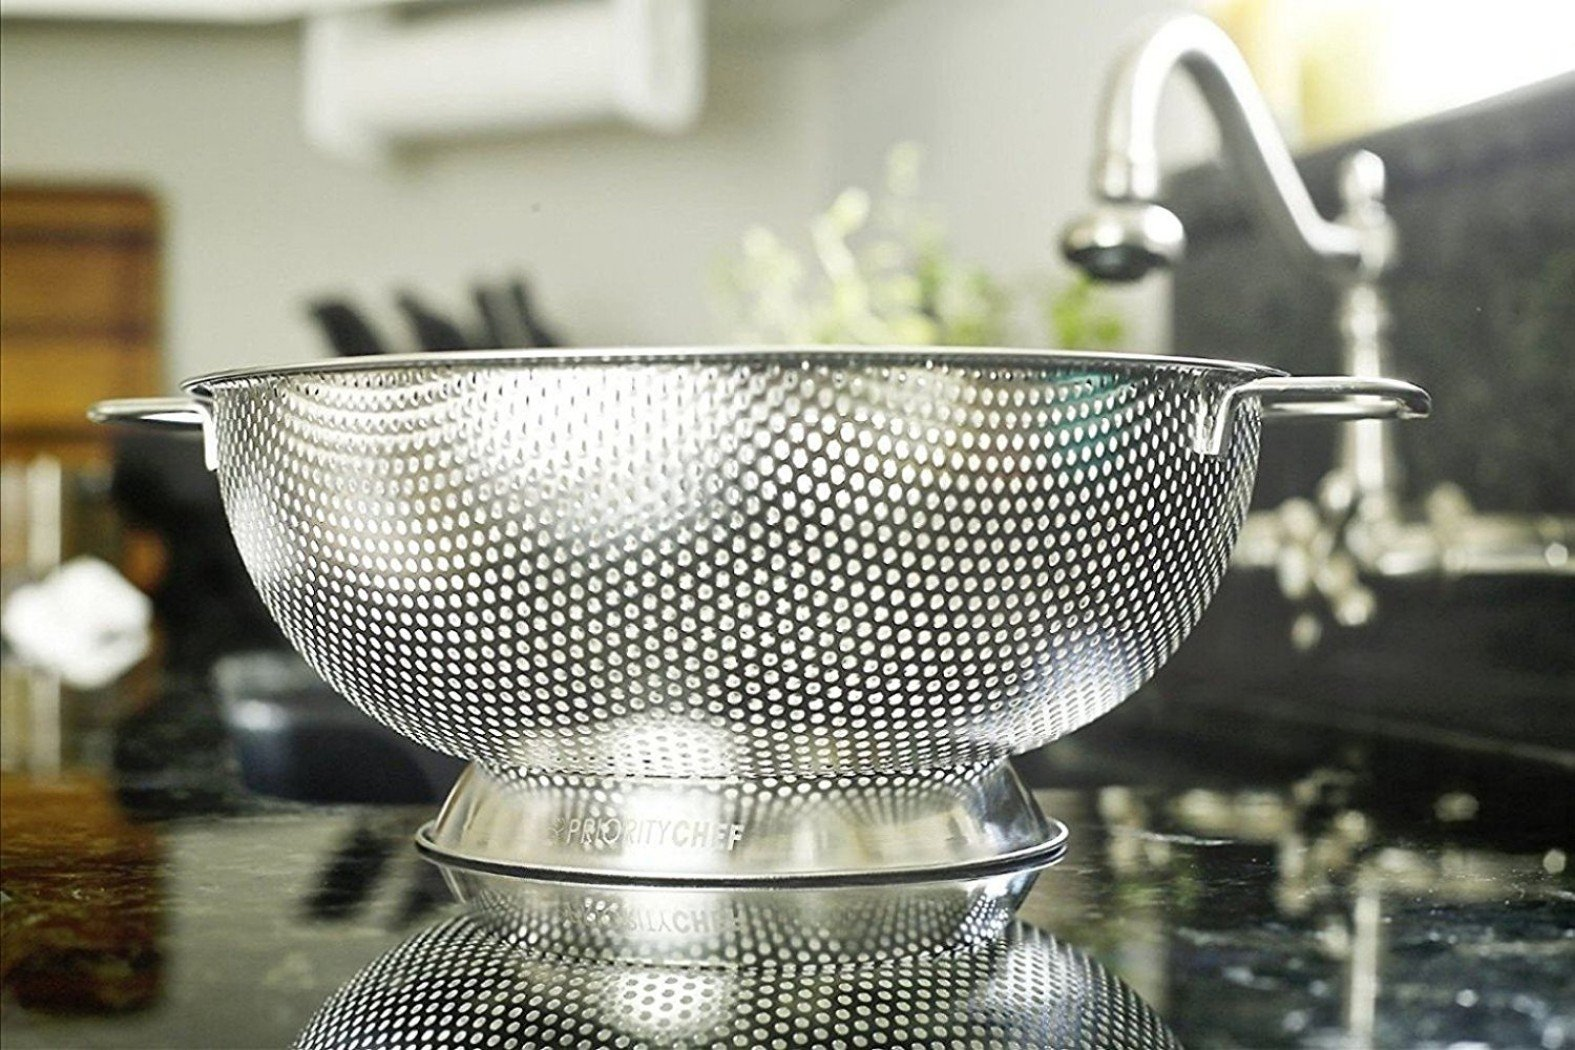 PriorityChef Colander, Stainless Steel 3 Qrt Kitchen Strainer With Large Stable Base by Priority Chef (Image #3)